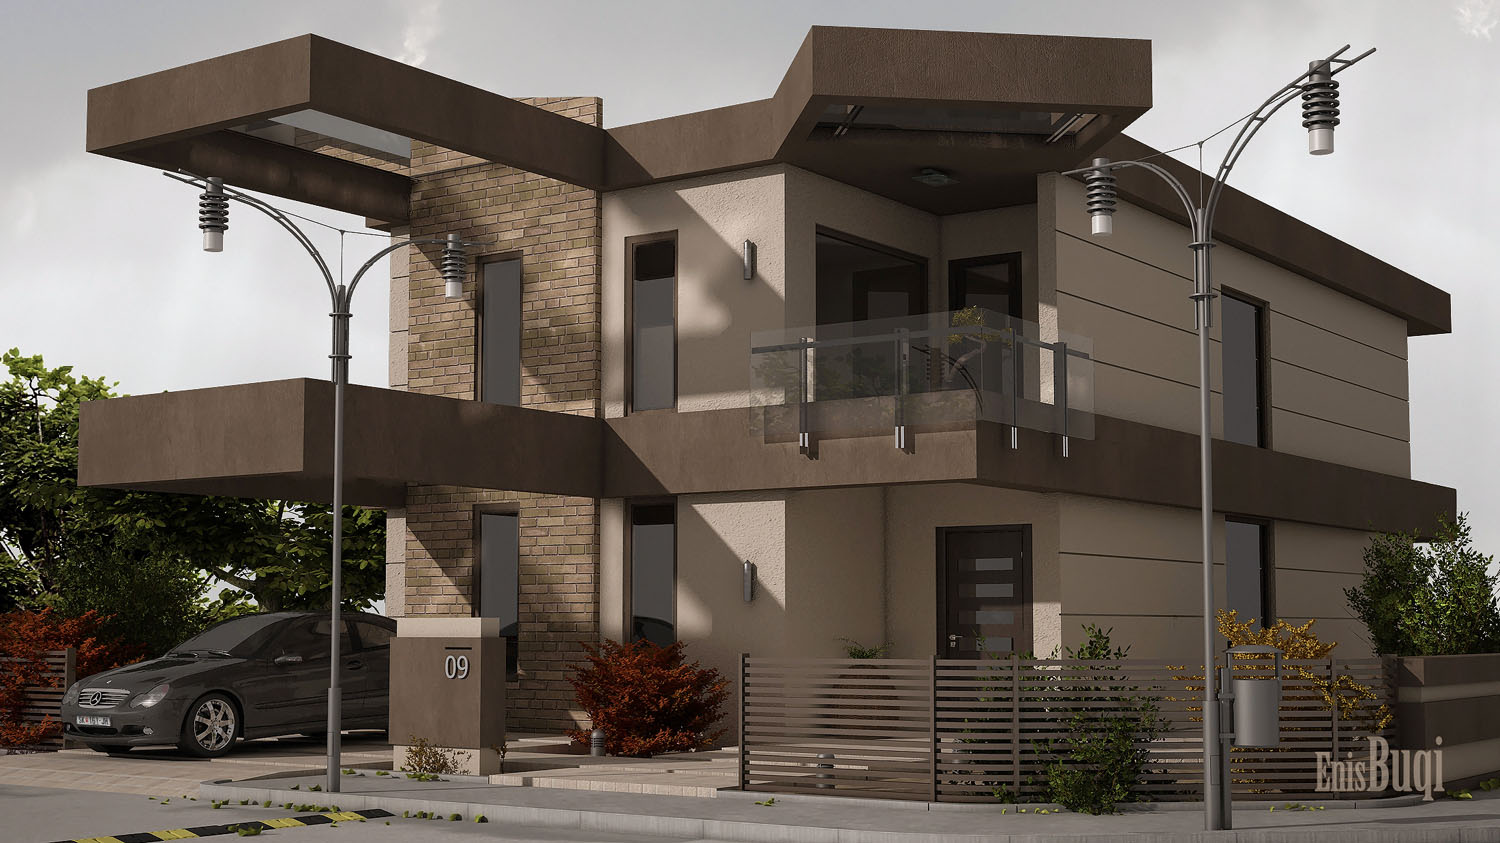 The Best 100+ Exterior House Designs 3d Max Image Collections (www ...